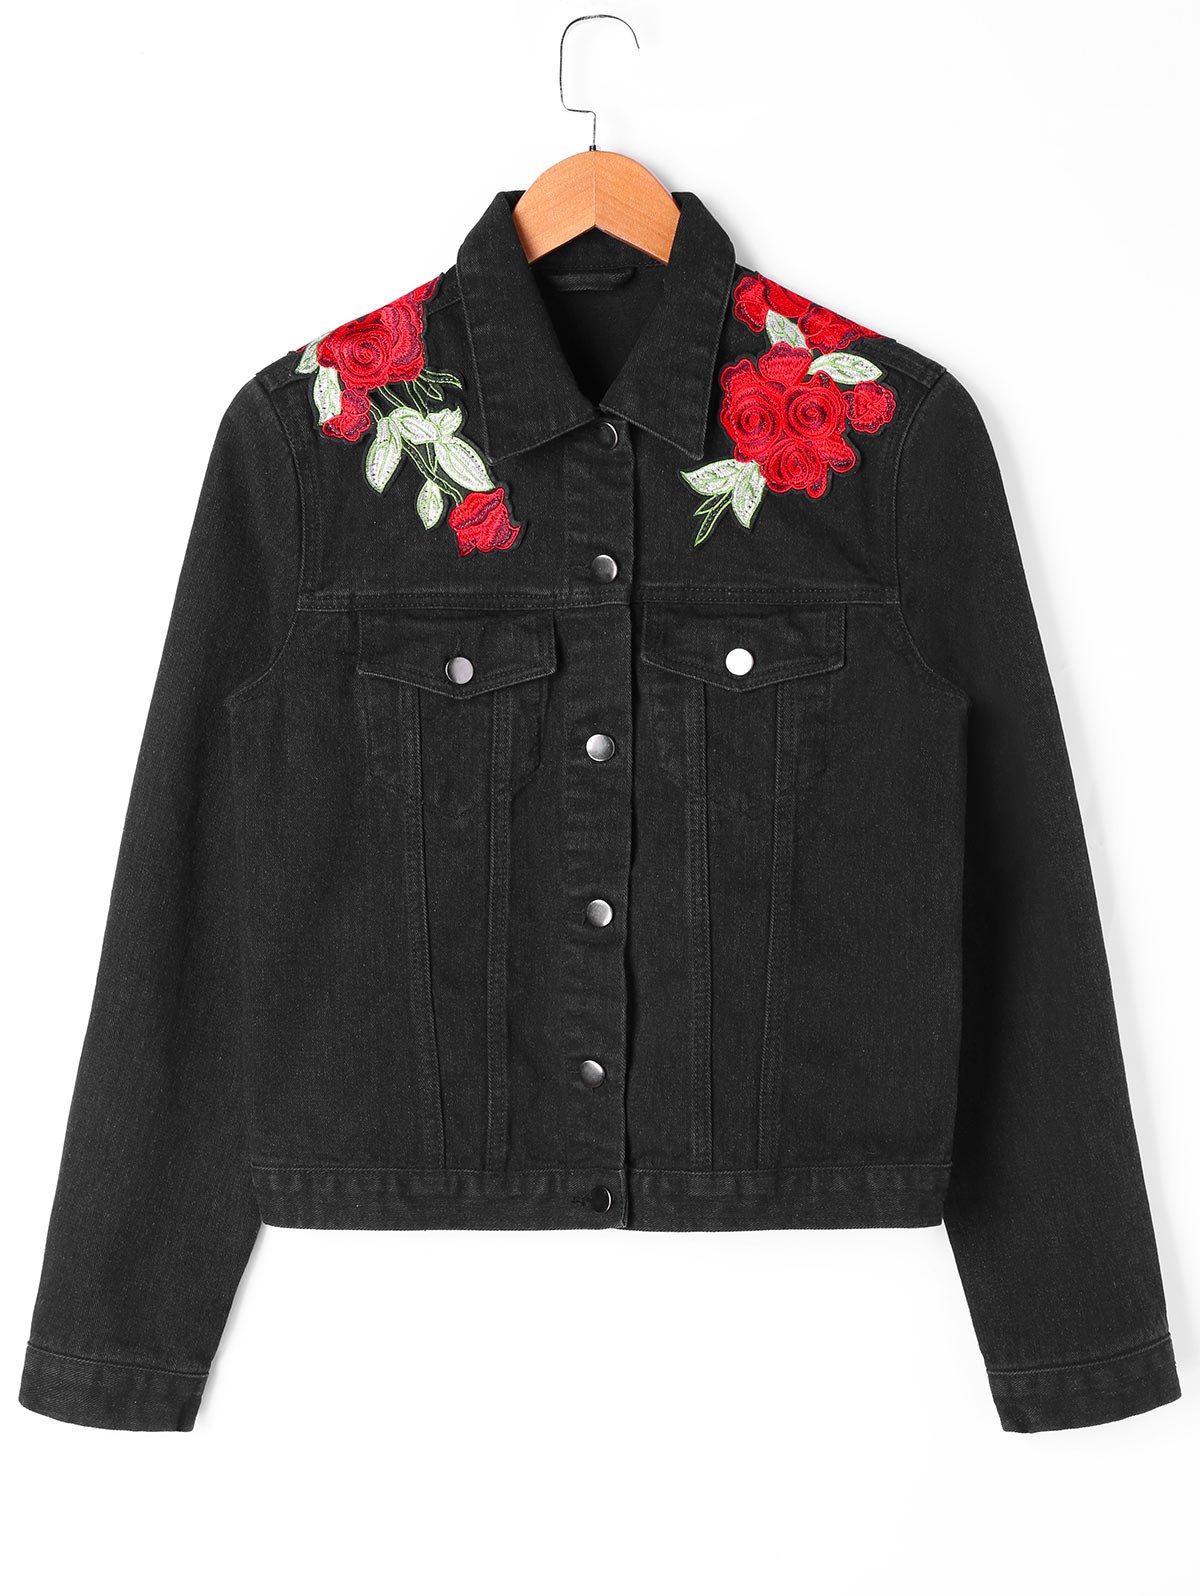 Sale Floral Embroidery Applique Shirt Jacket